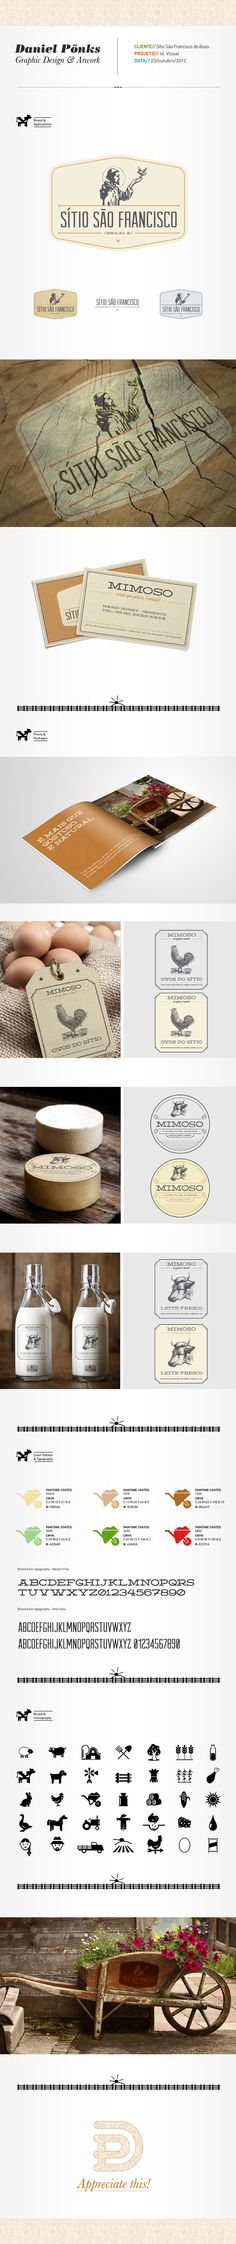 São Francisco de Assis Farm by Daniel Pönks, via Behance #identity #packaging #branding #marketing PD